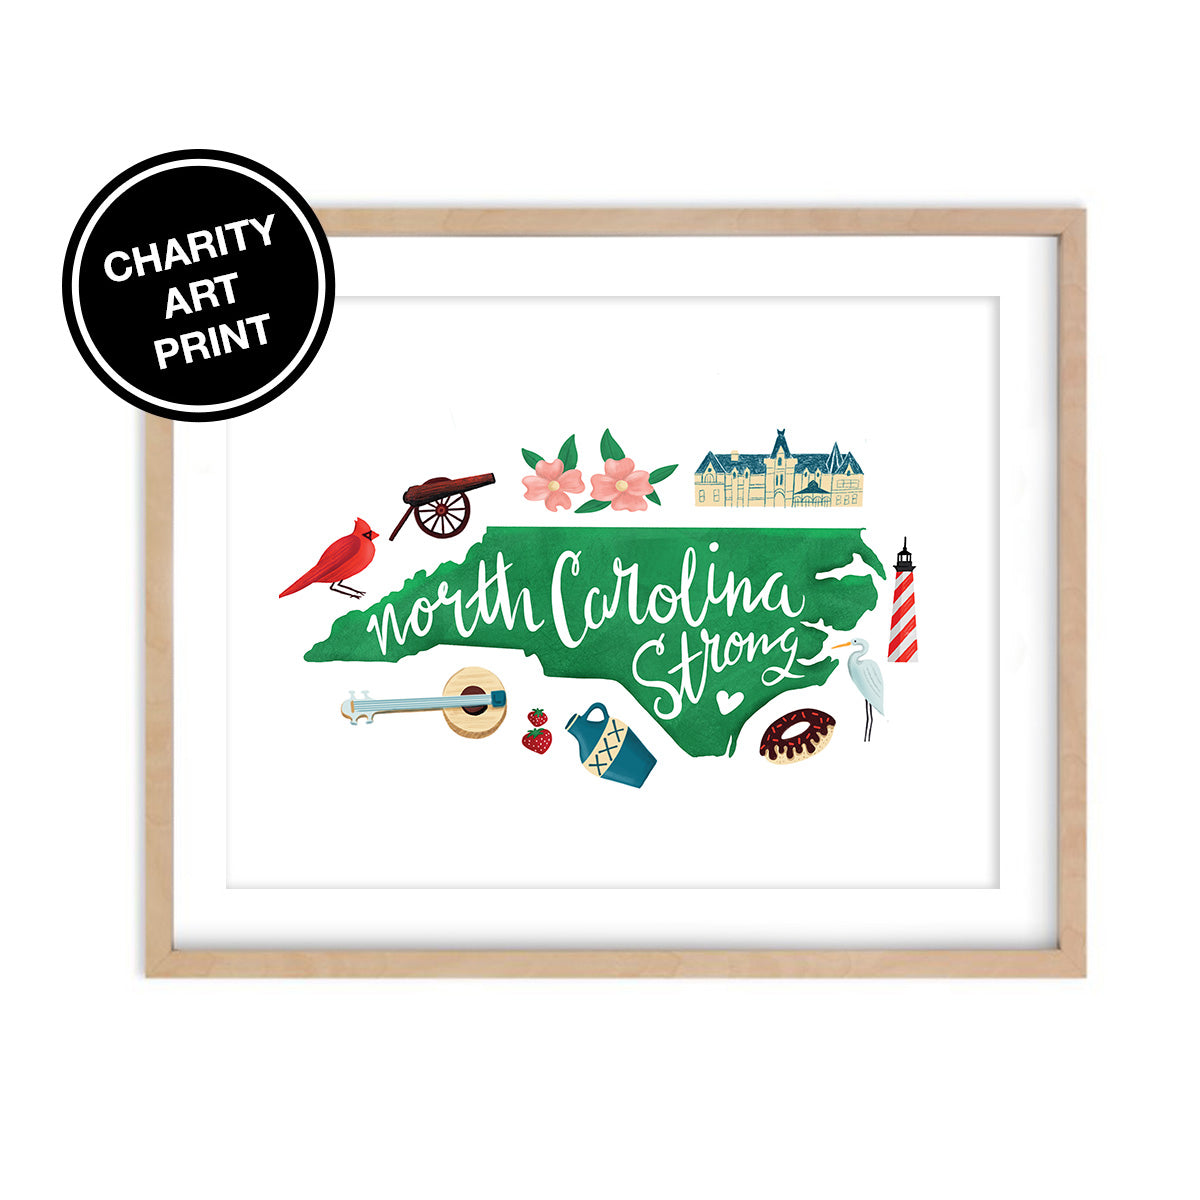 Hurricane Florence Relief - Charity Art Prints